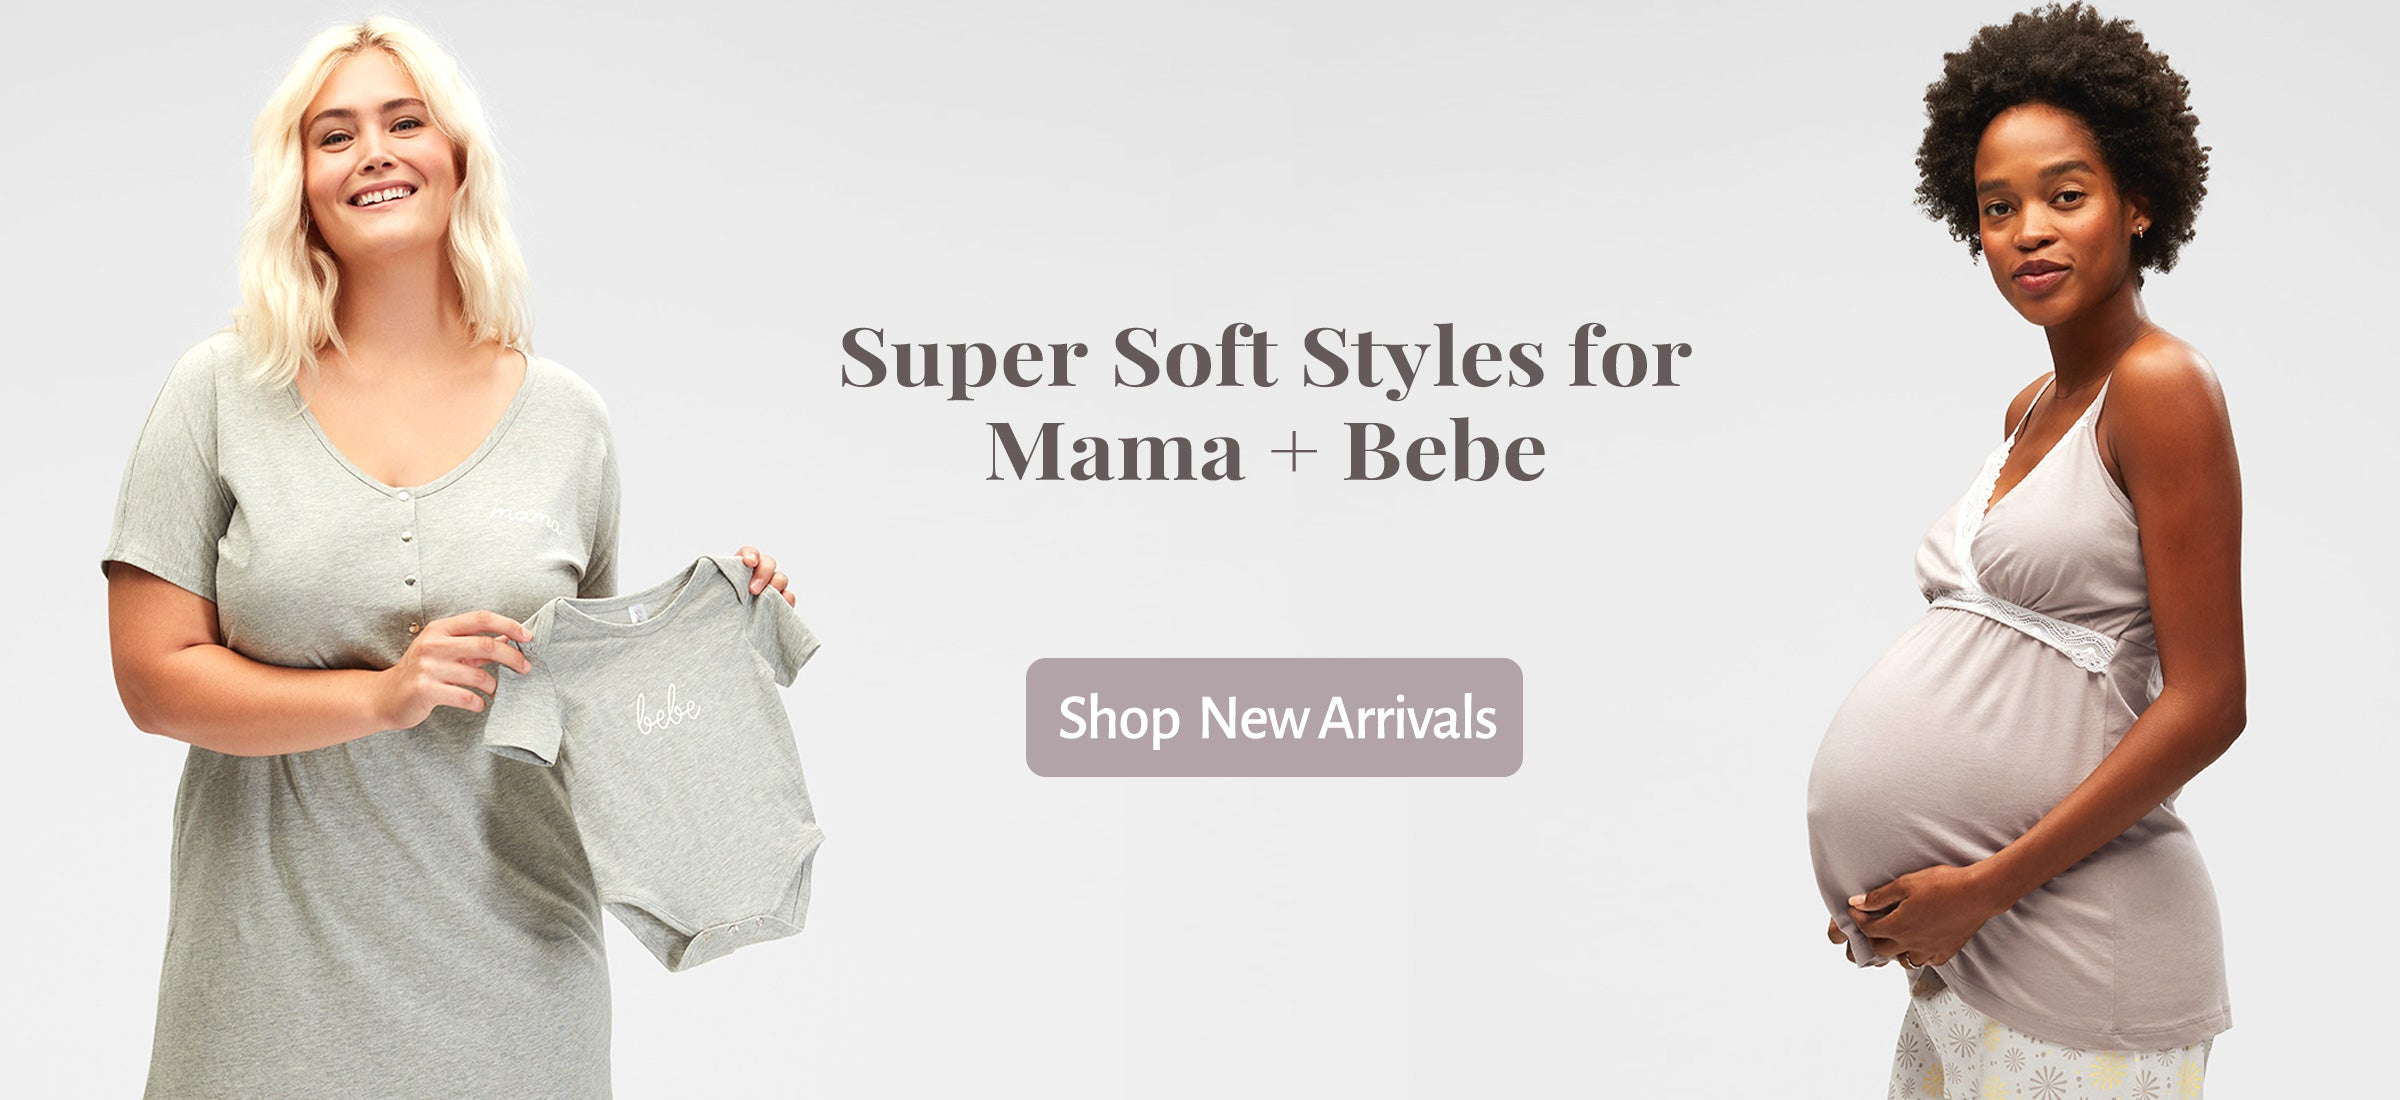 Super Soft Styles for Mama + Bebe